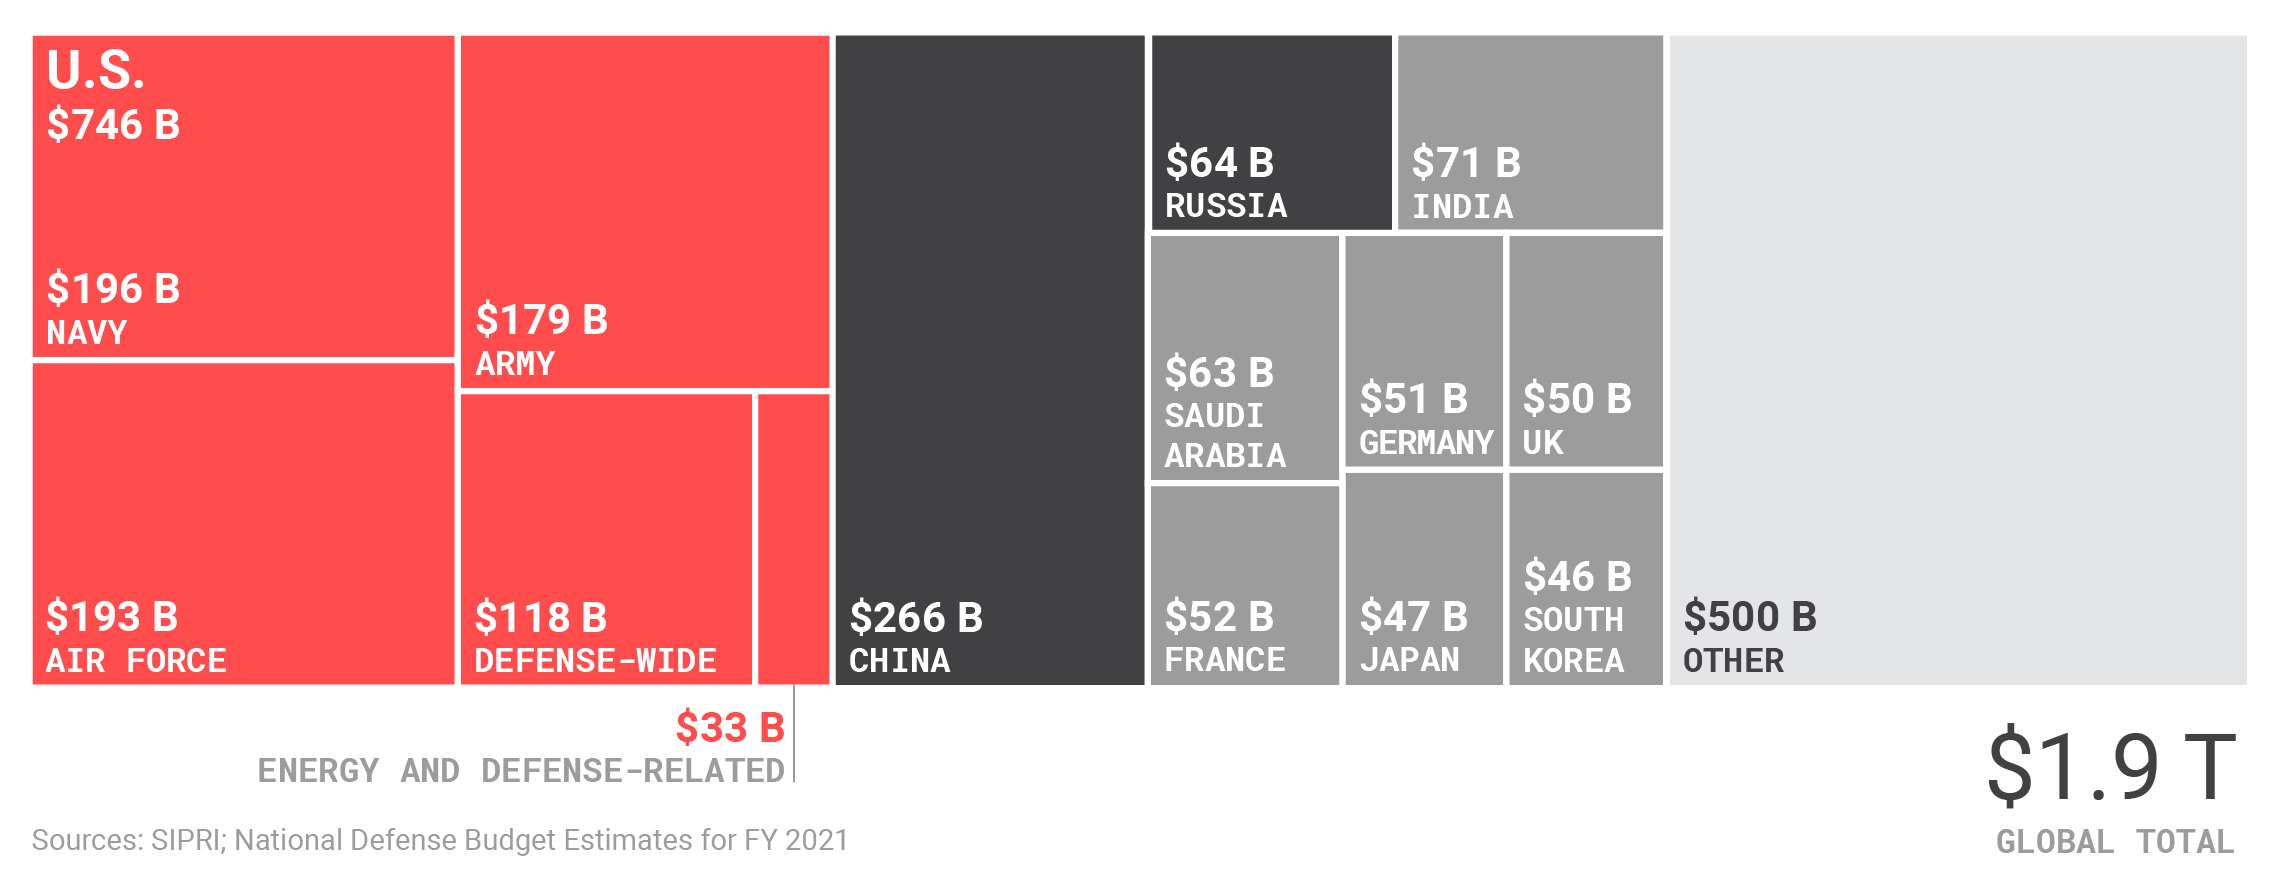 U.S. military spending compared to allies and competitors.png